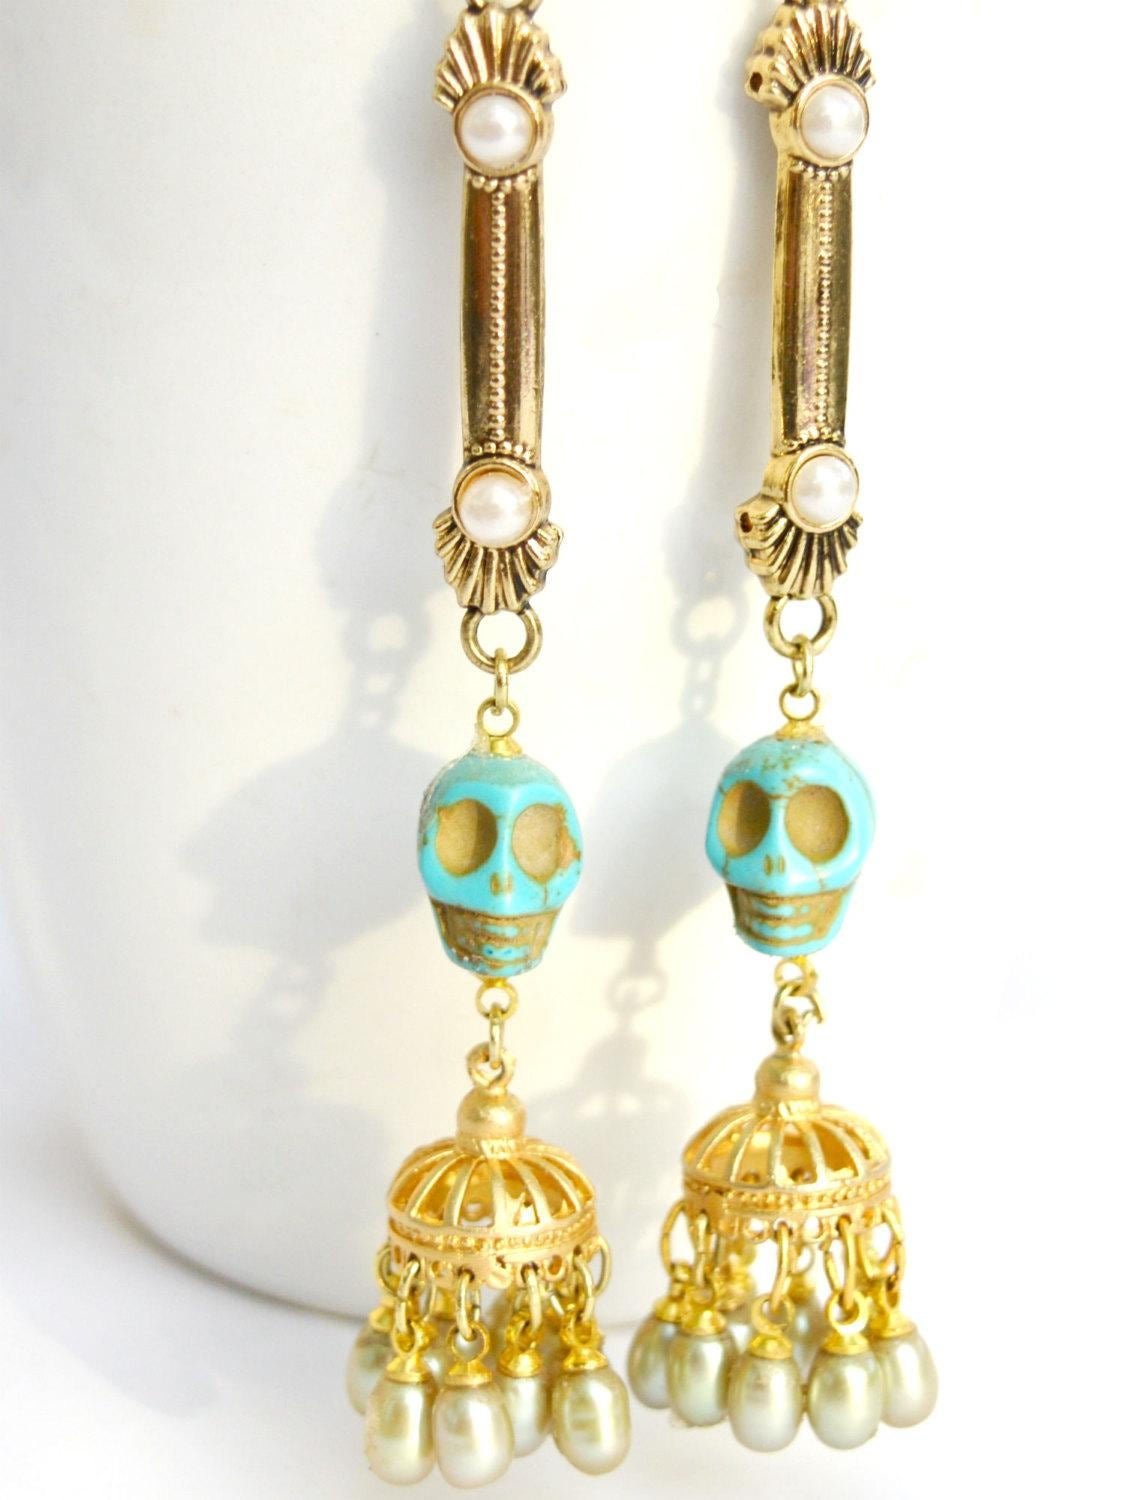 gold chandelier earrings with skulls and pearls for alternative brides